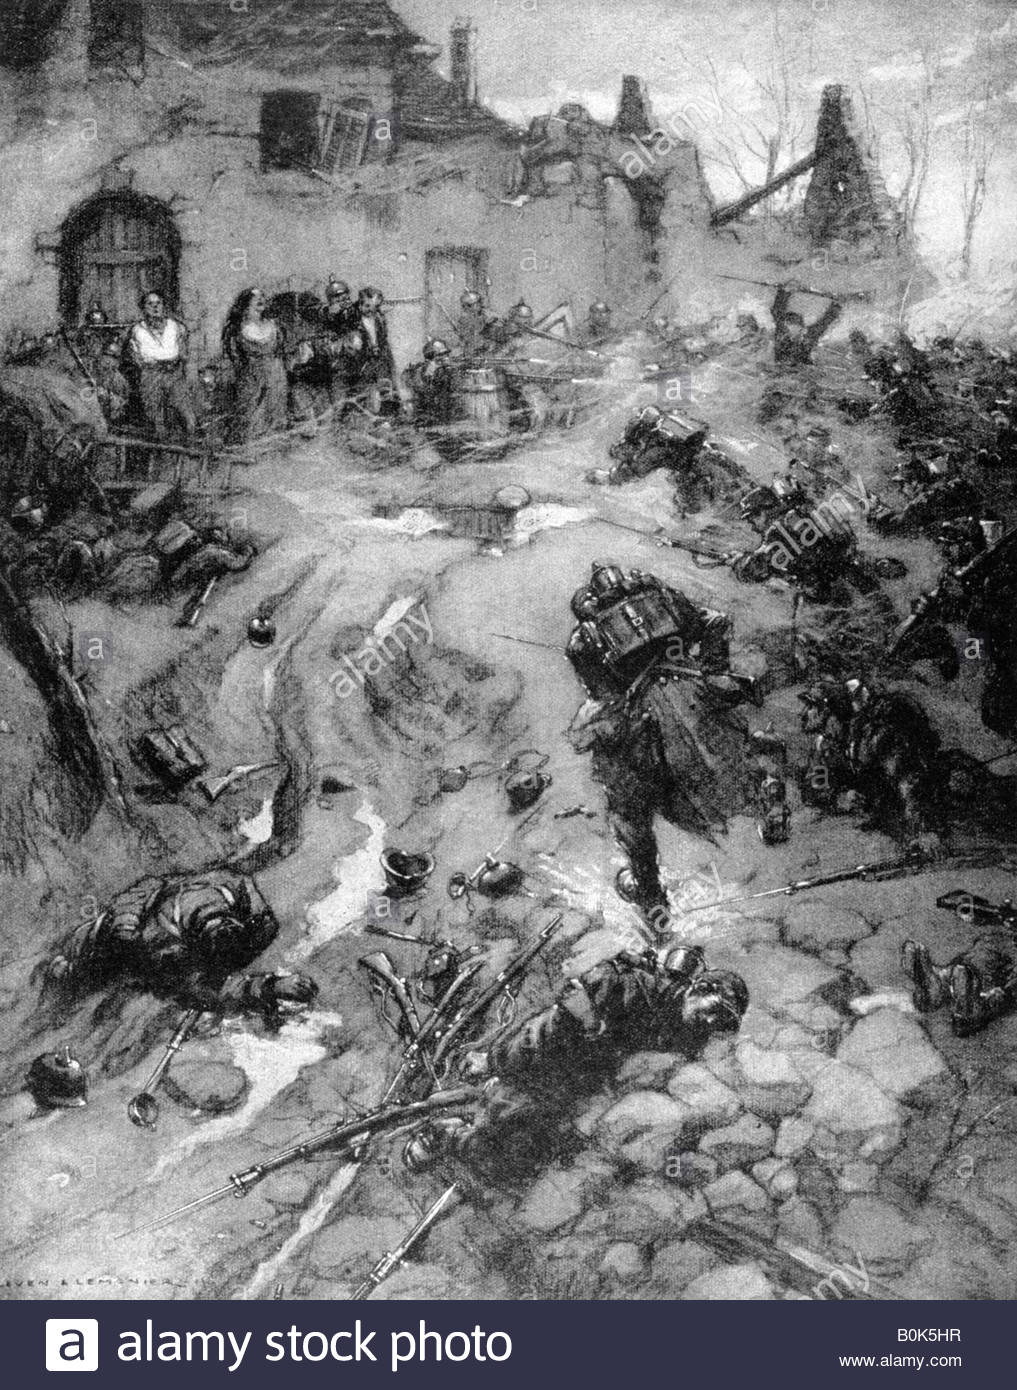 'Our Troops take Steinbach, Alsace', World War I, 1915. Artist: Leven and Lemonier - Stock Image